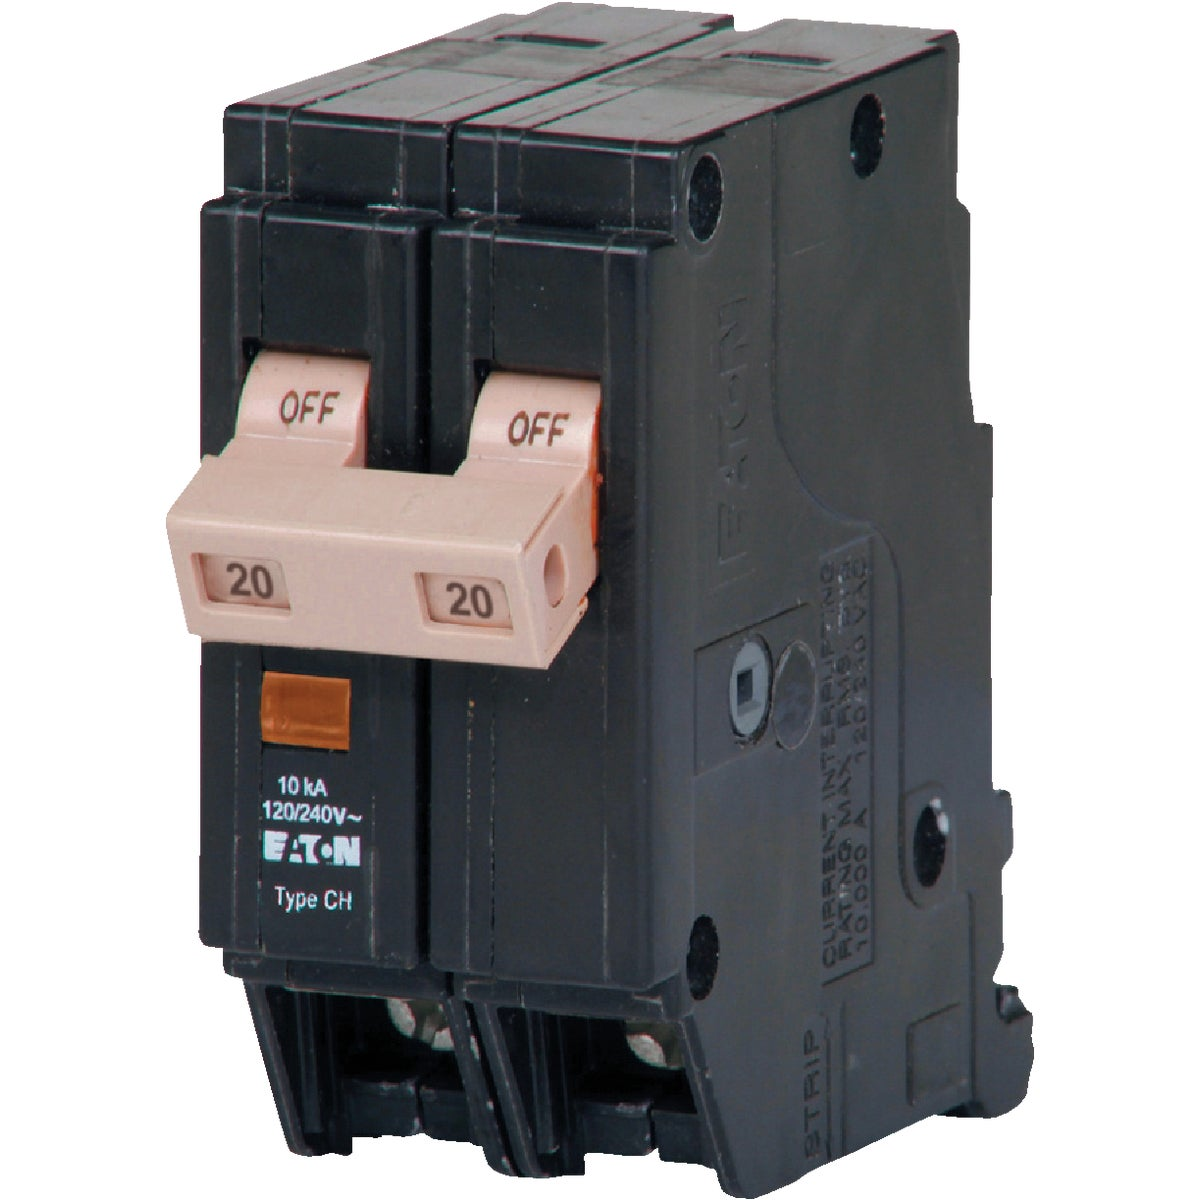 20A 2P CIRCUIT BREAKER - CHF220 by Eaton Corporation